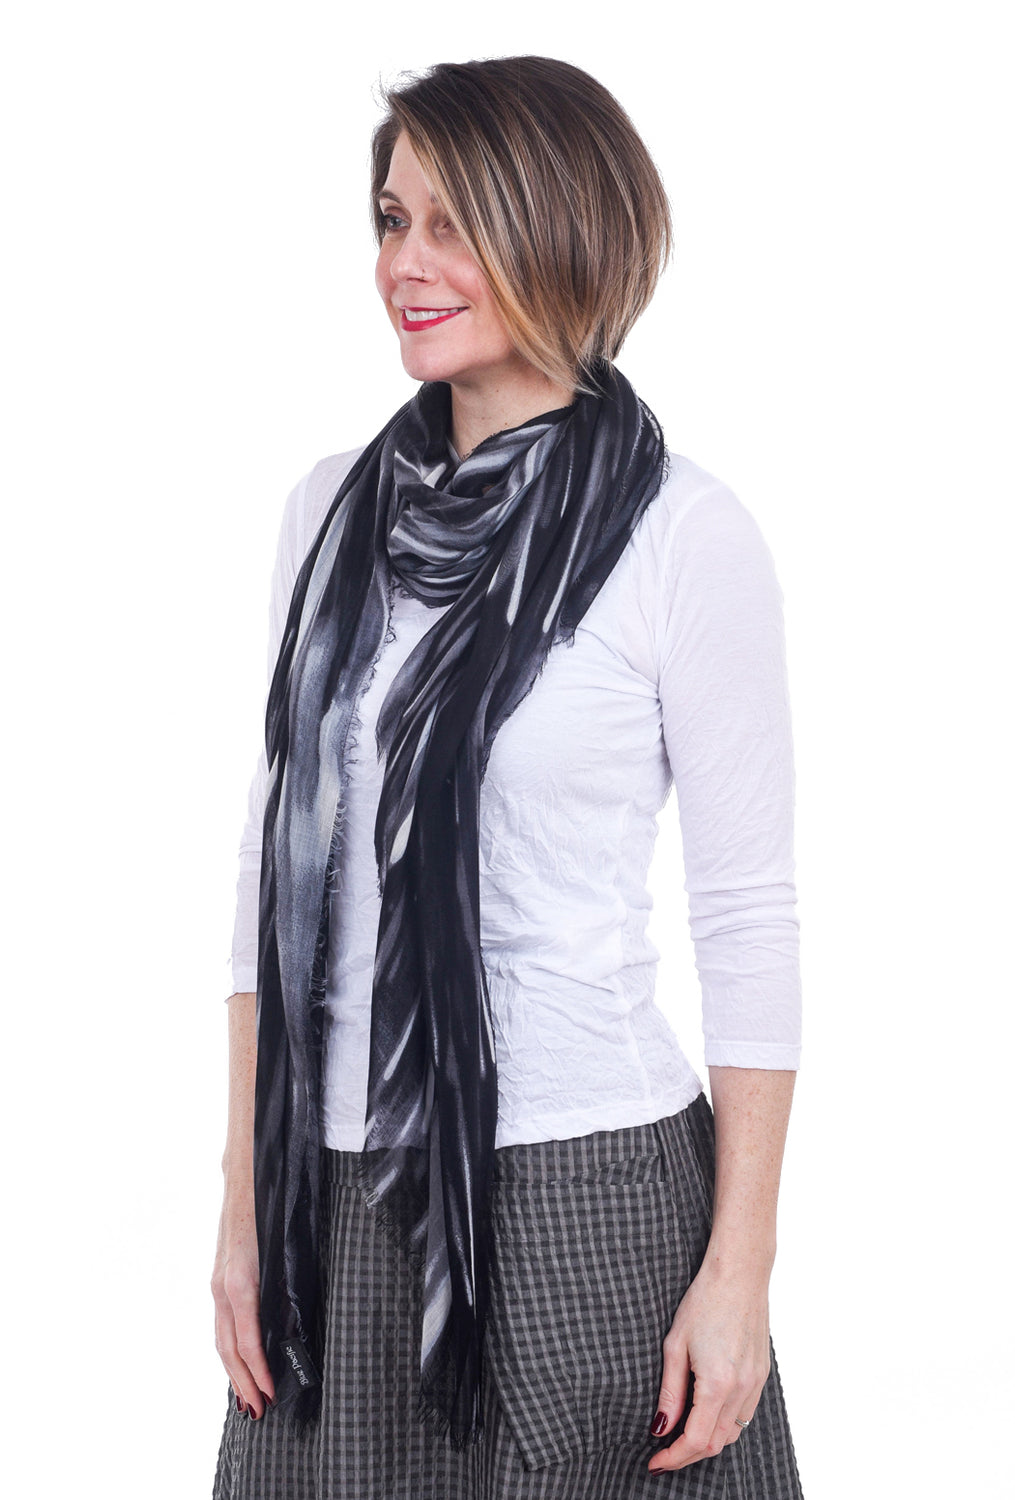 Blue Pacific Rain Scarf, Black One Size Black